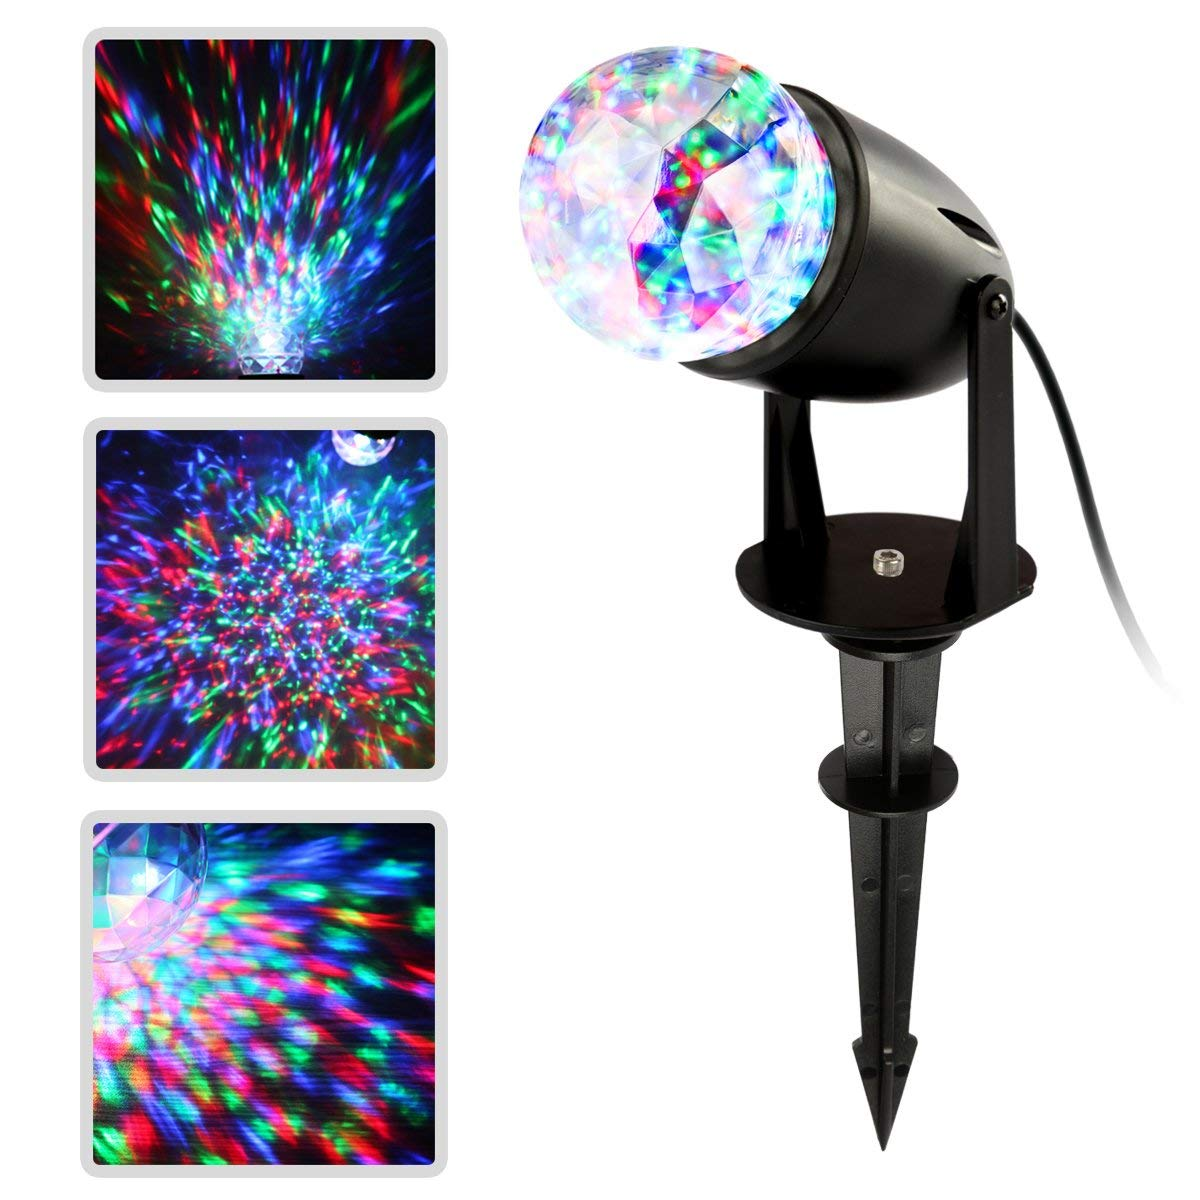 CoastaCloud Led Projector Light Holiday Decoration Light Moving Water Wave Spotlight Stake Lamp Waterproof Multicolor Kaleidoscope Projection for Halloween, Christmas Party